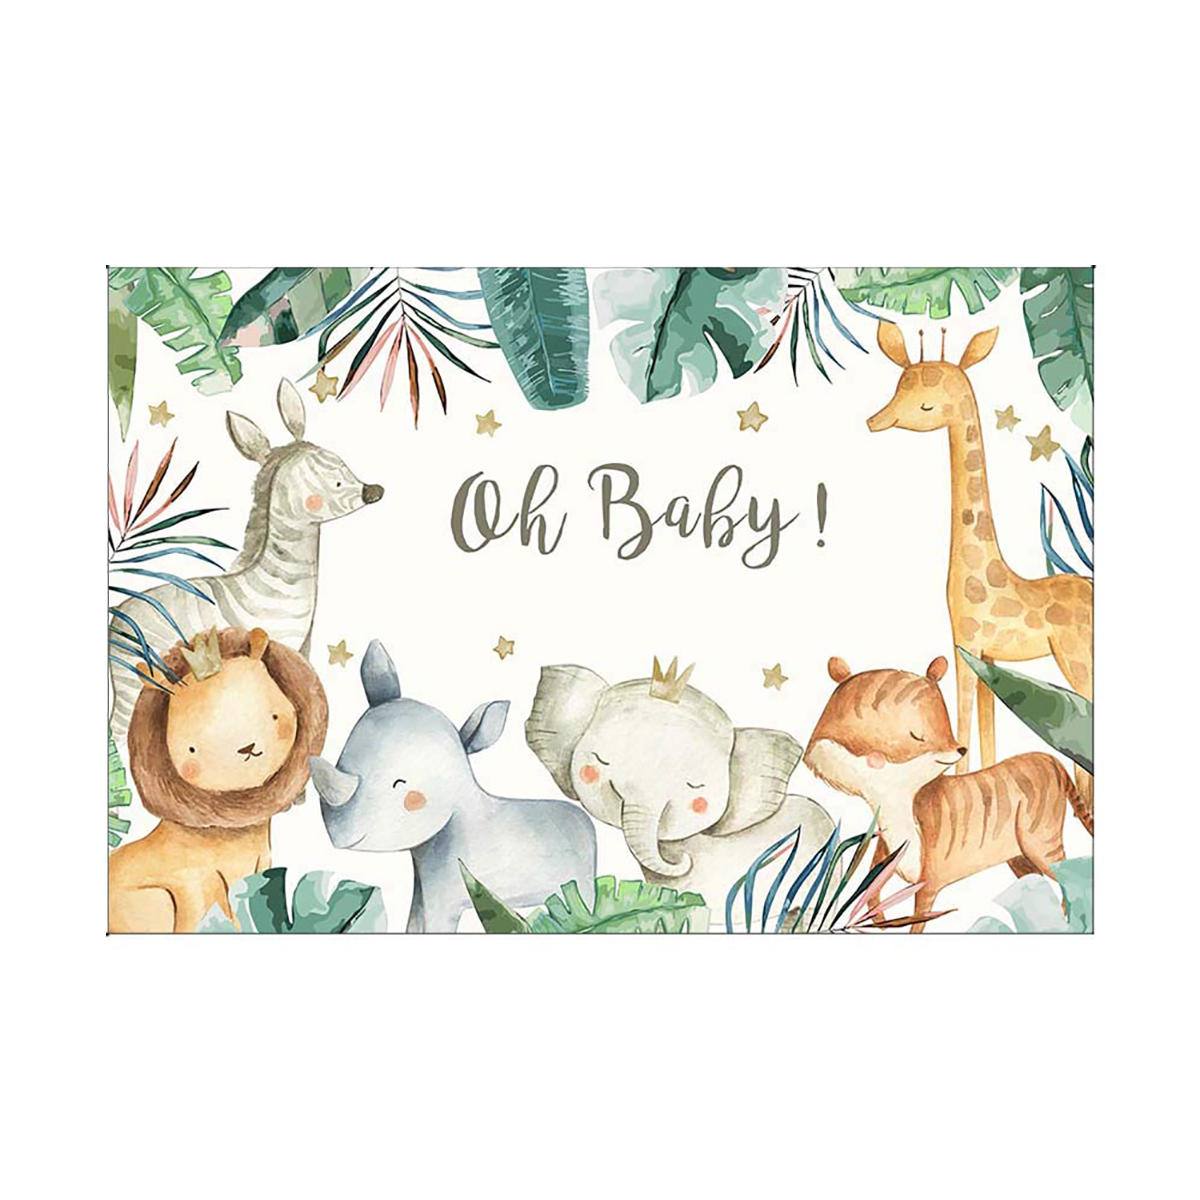 5x3FT 7x5FT Jungle Shower Oh Baby Theme Photography Backdrop Studio Prop Background